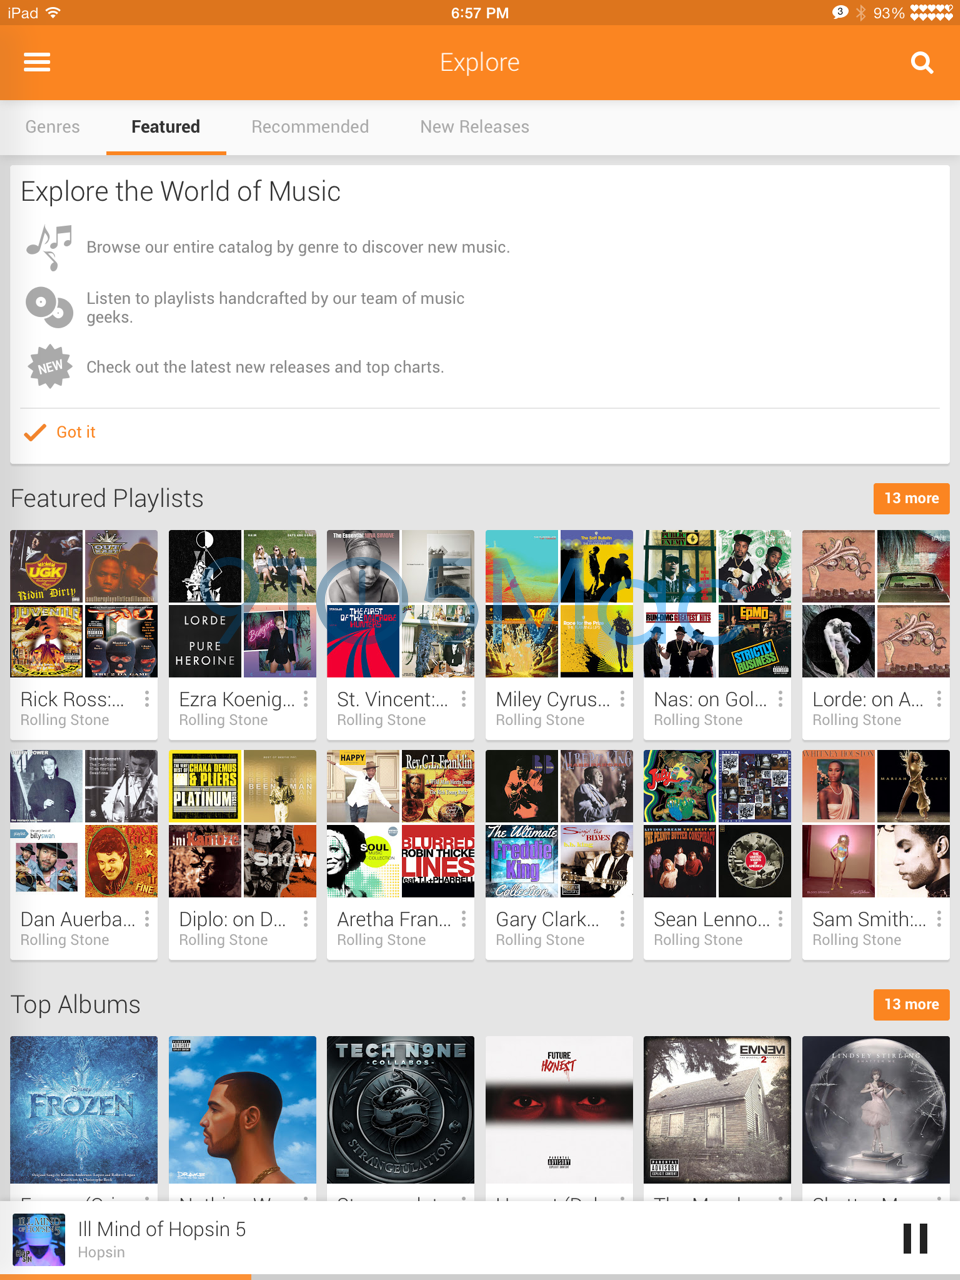 Google Play Music iPad app hidden inside iPhone version